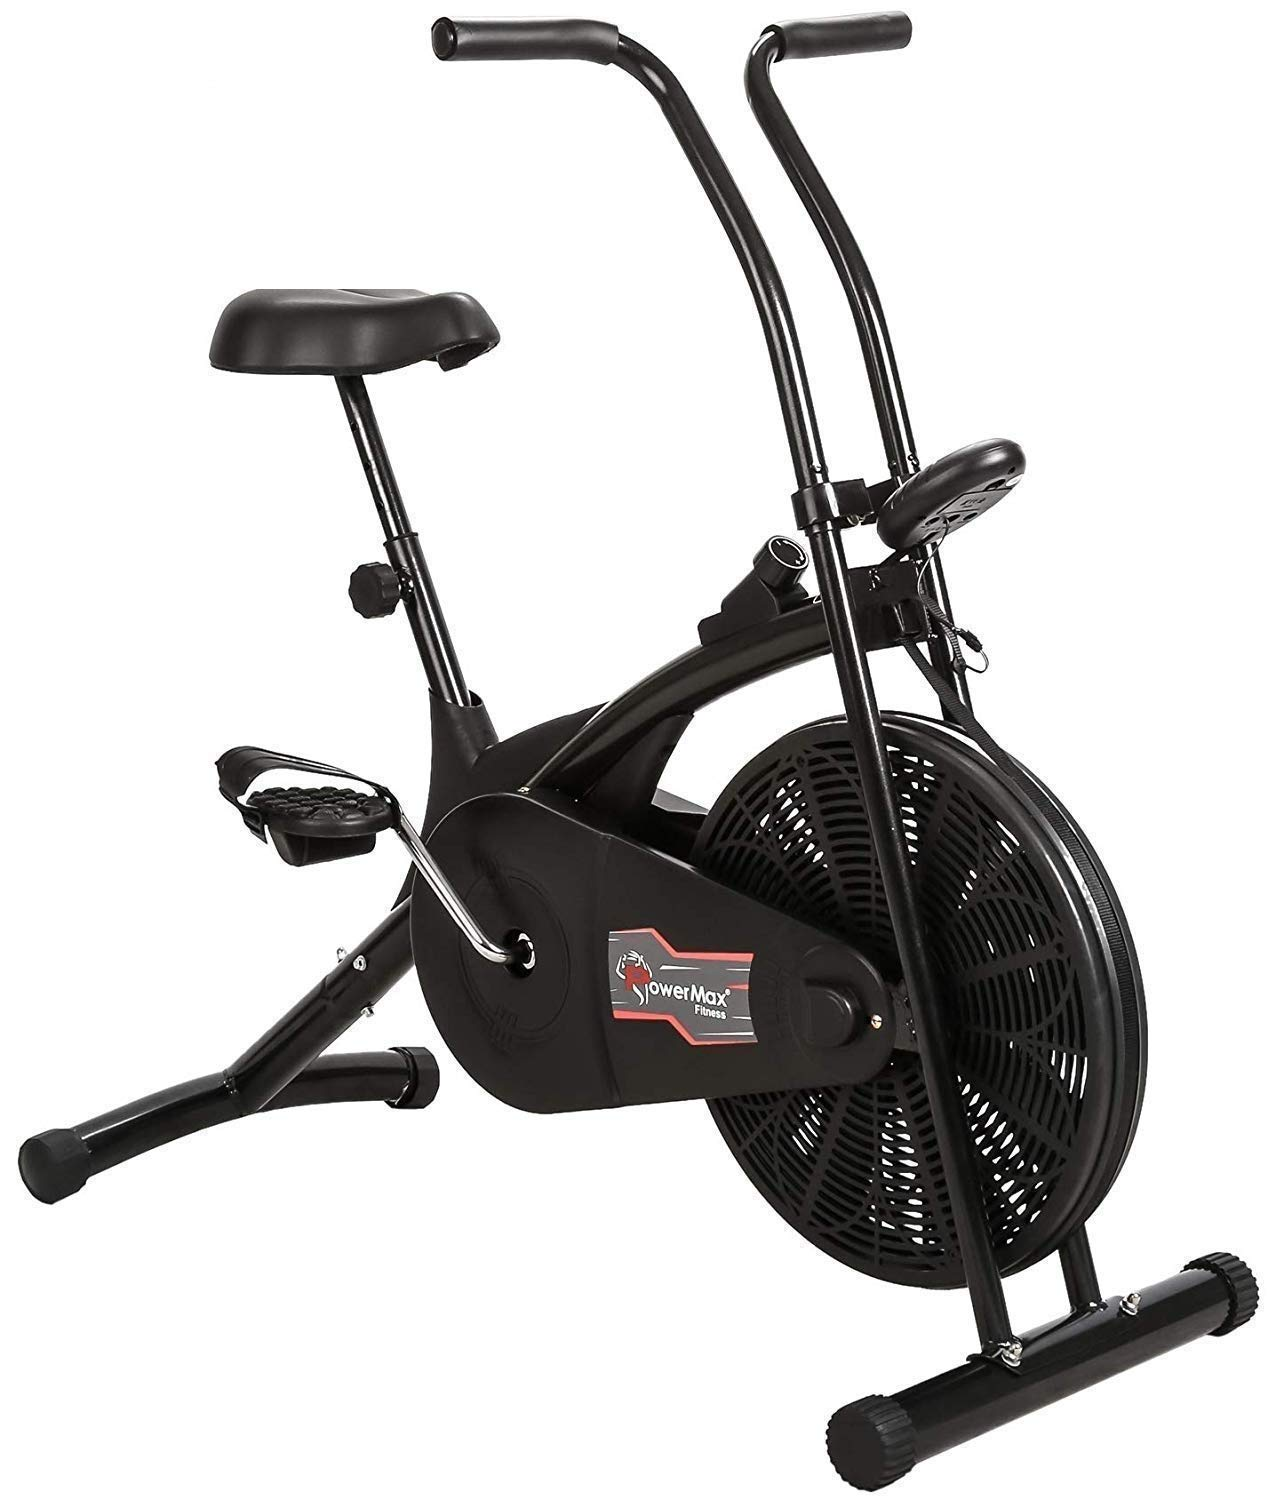 Powermax Fitness Air Bike Exercise Cycle for Weight Loss at